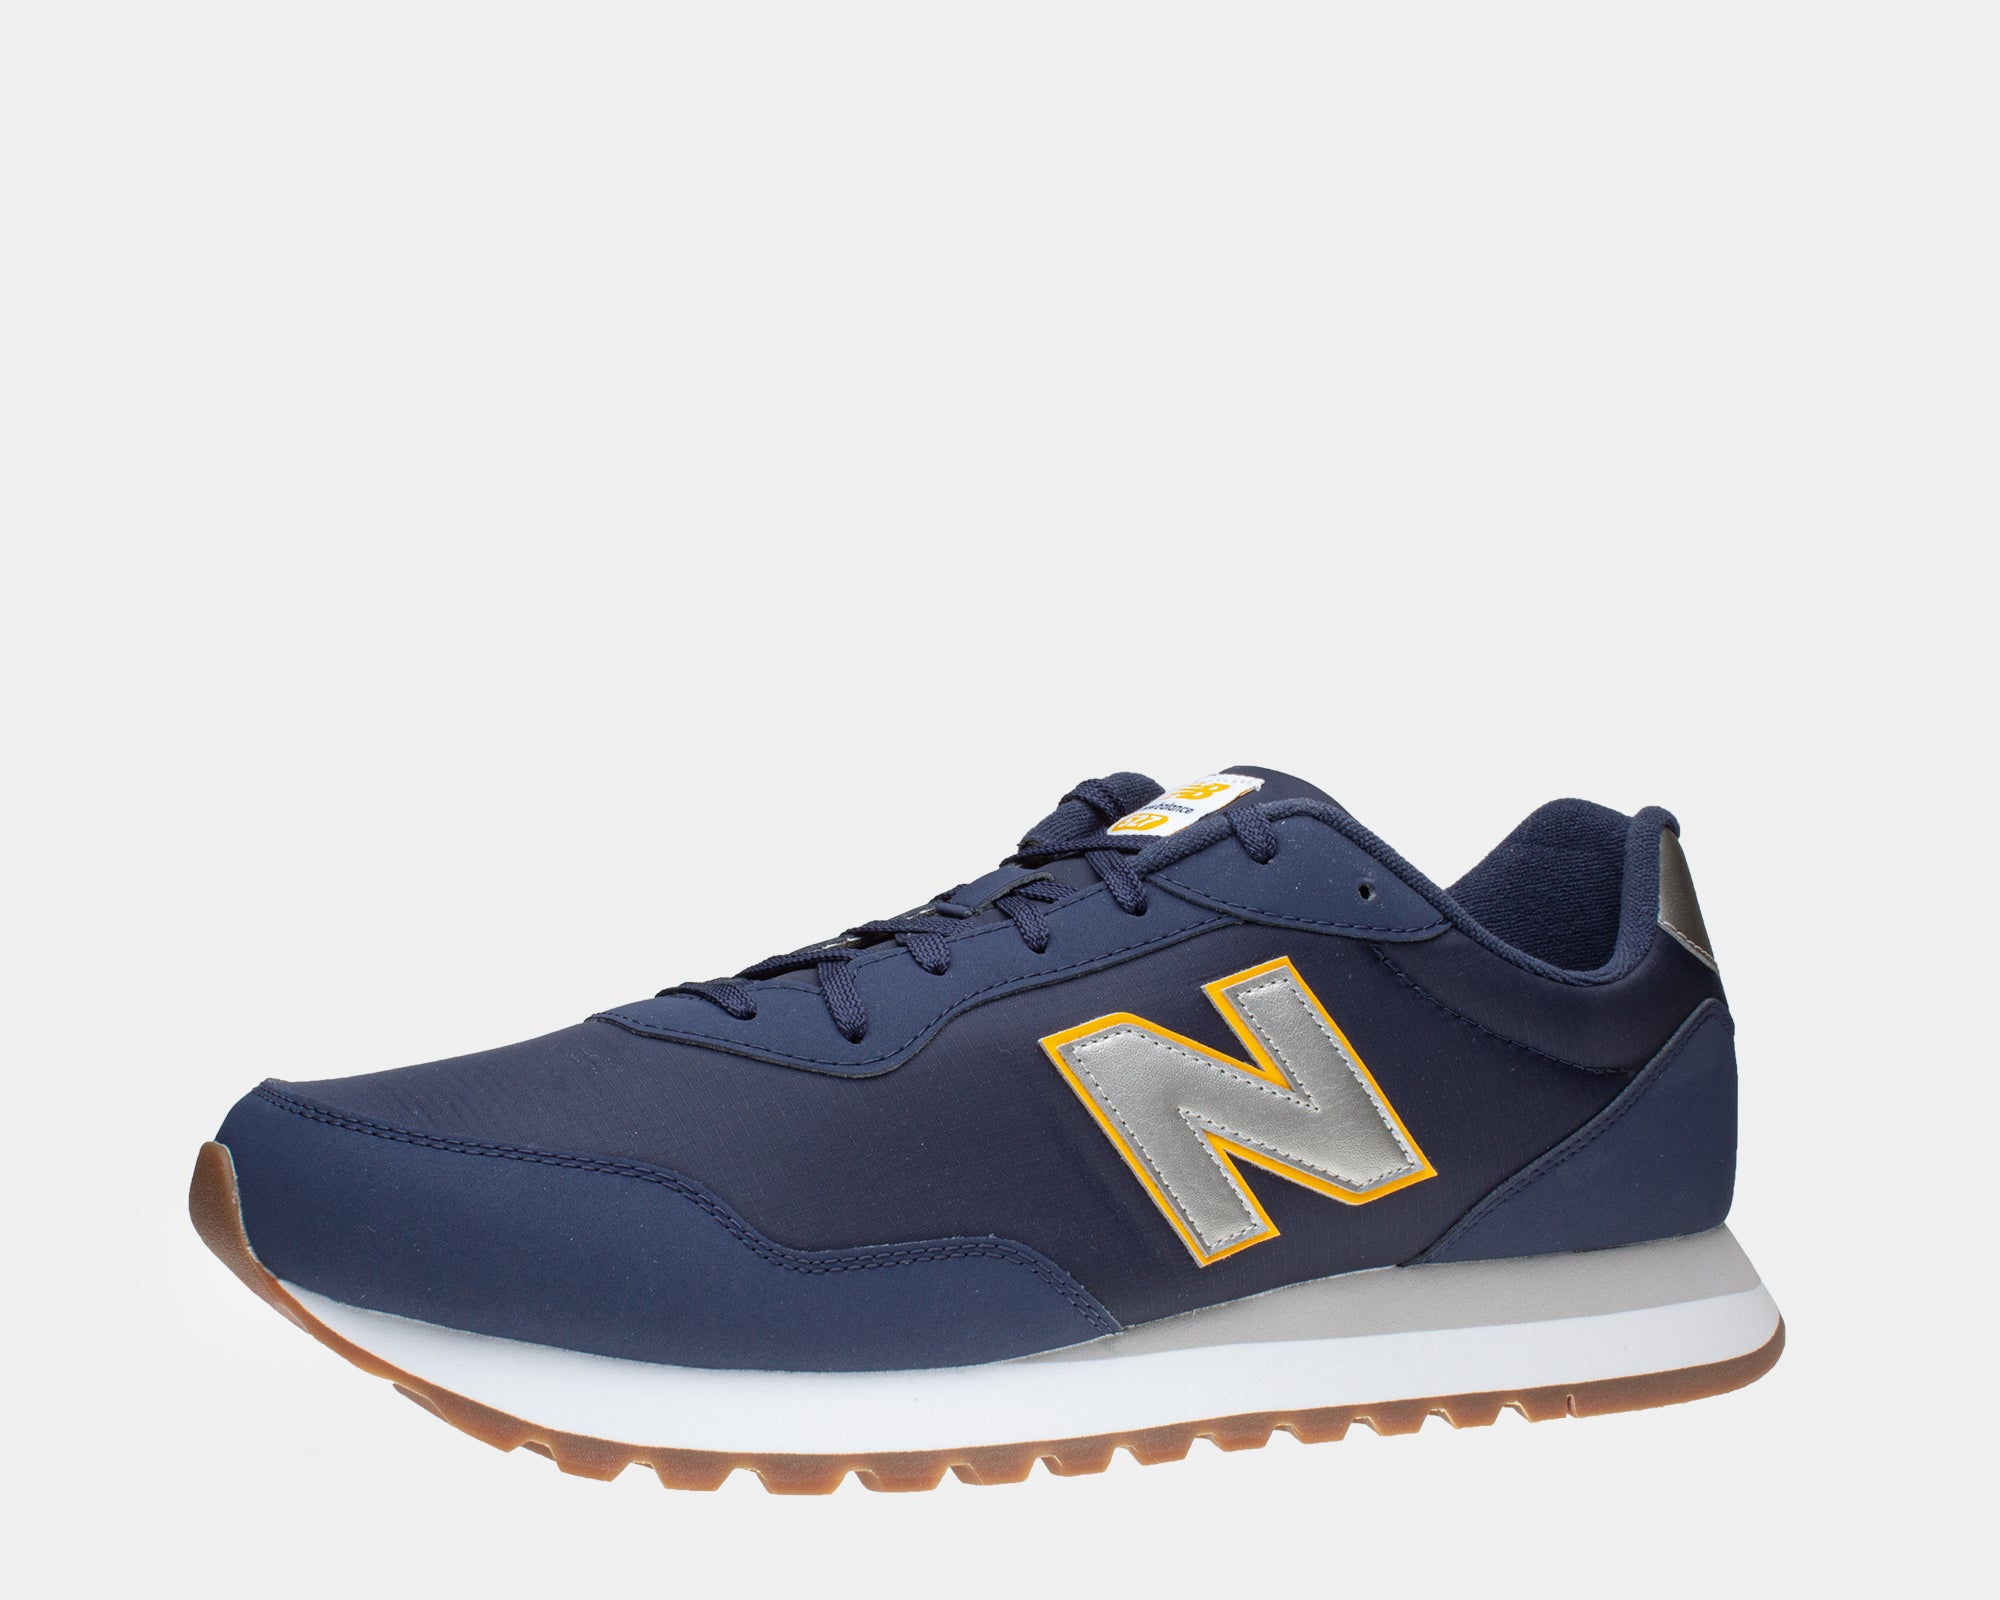 New Balance Shoes and Sandals - Mens